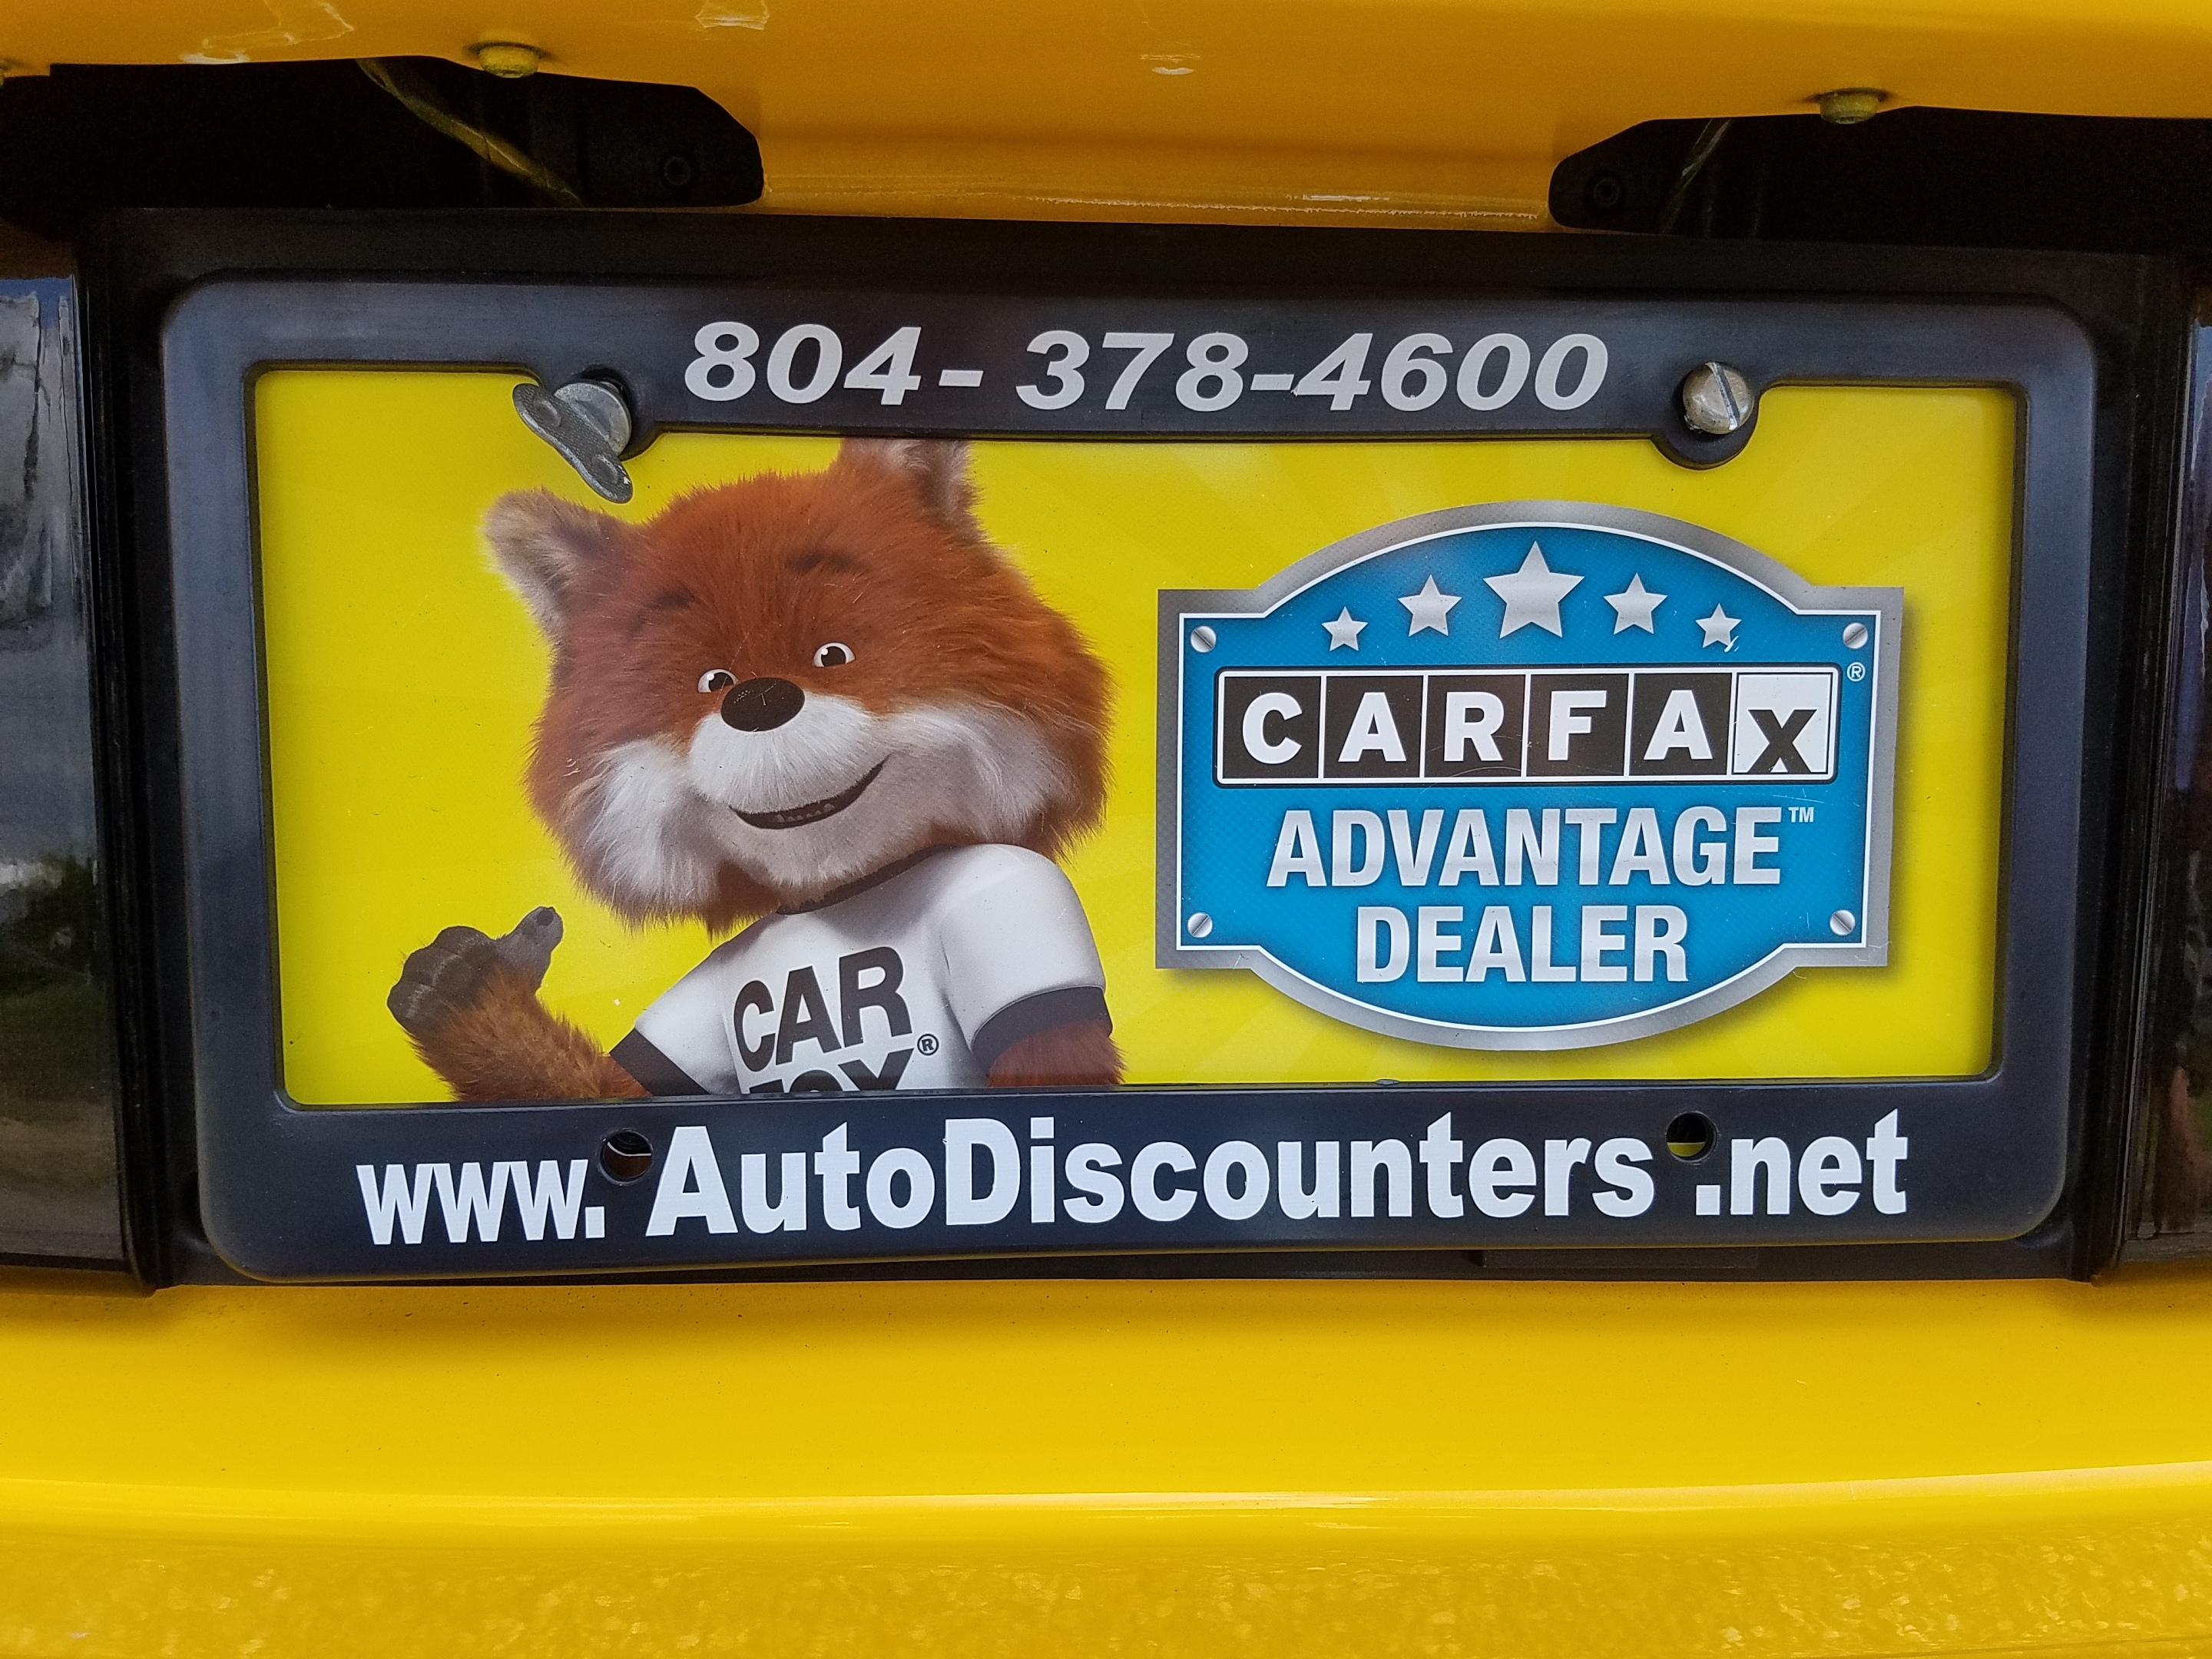 AUTO DISCOUNTERS - Richmond, VA